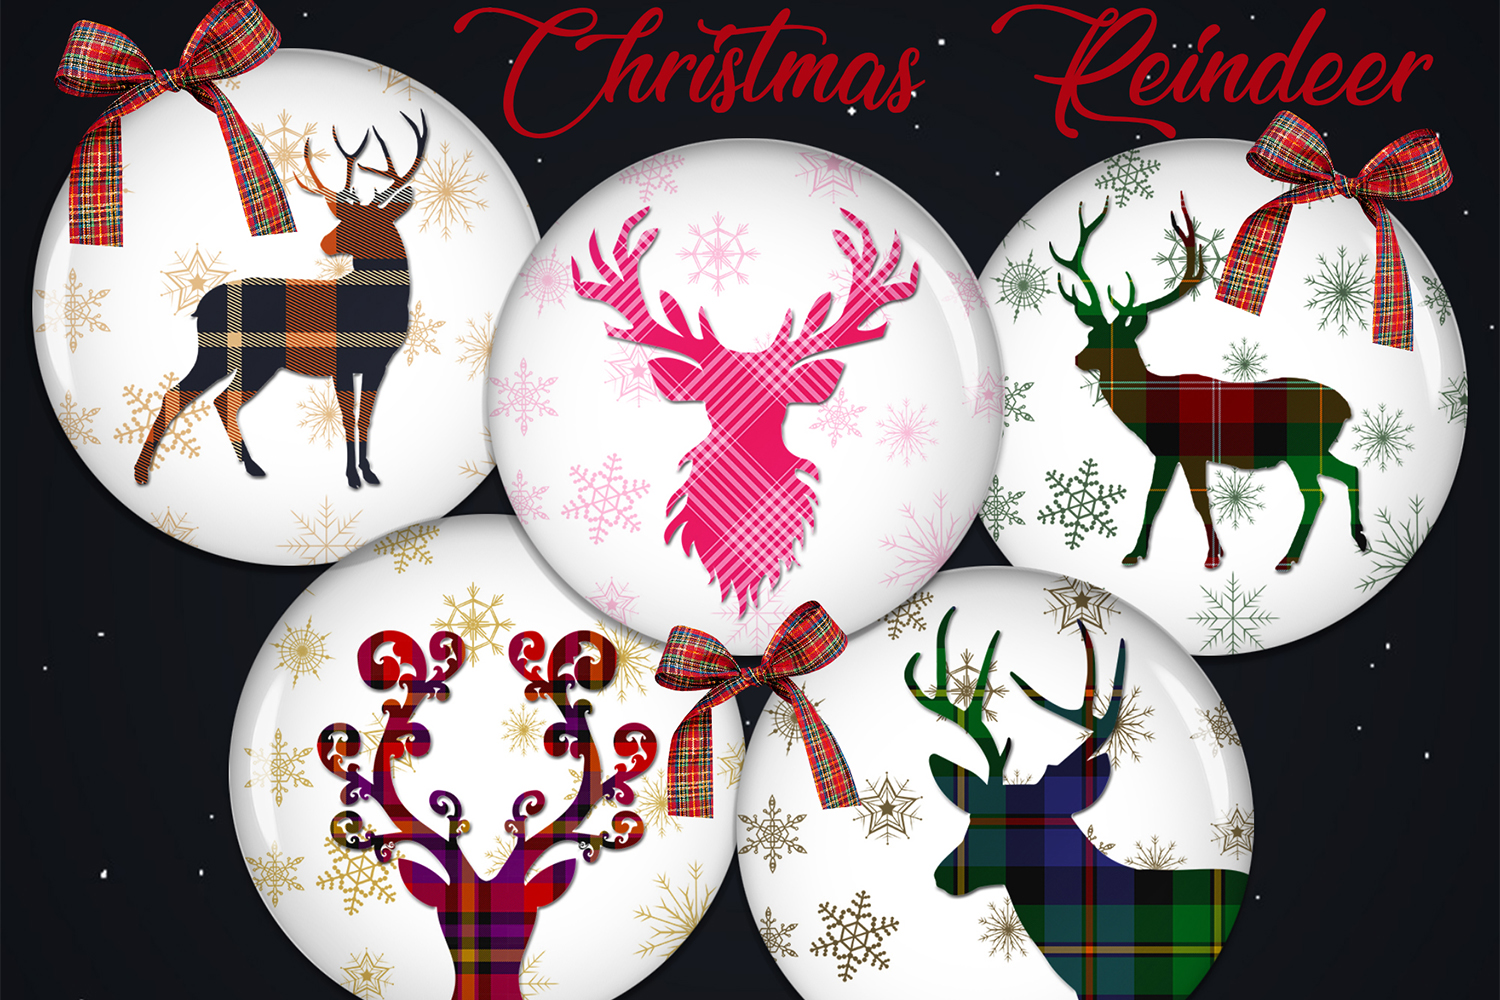 Christmas Digital Collage Sheet, Reindeer Printable Images example image 1